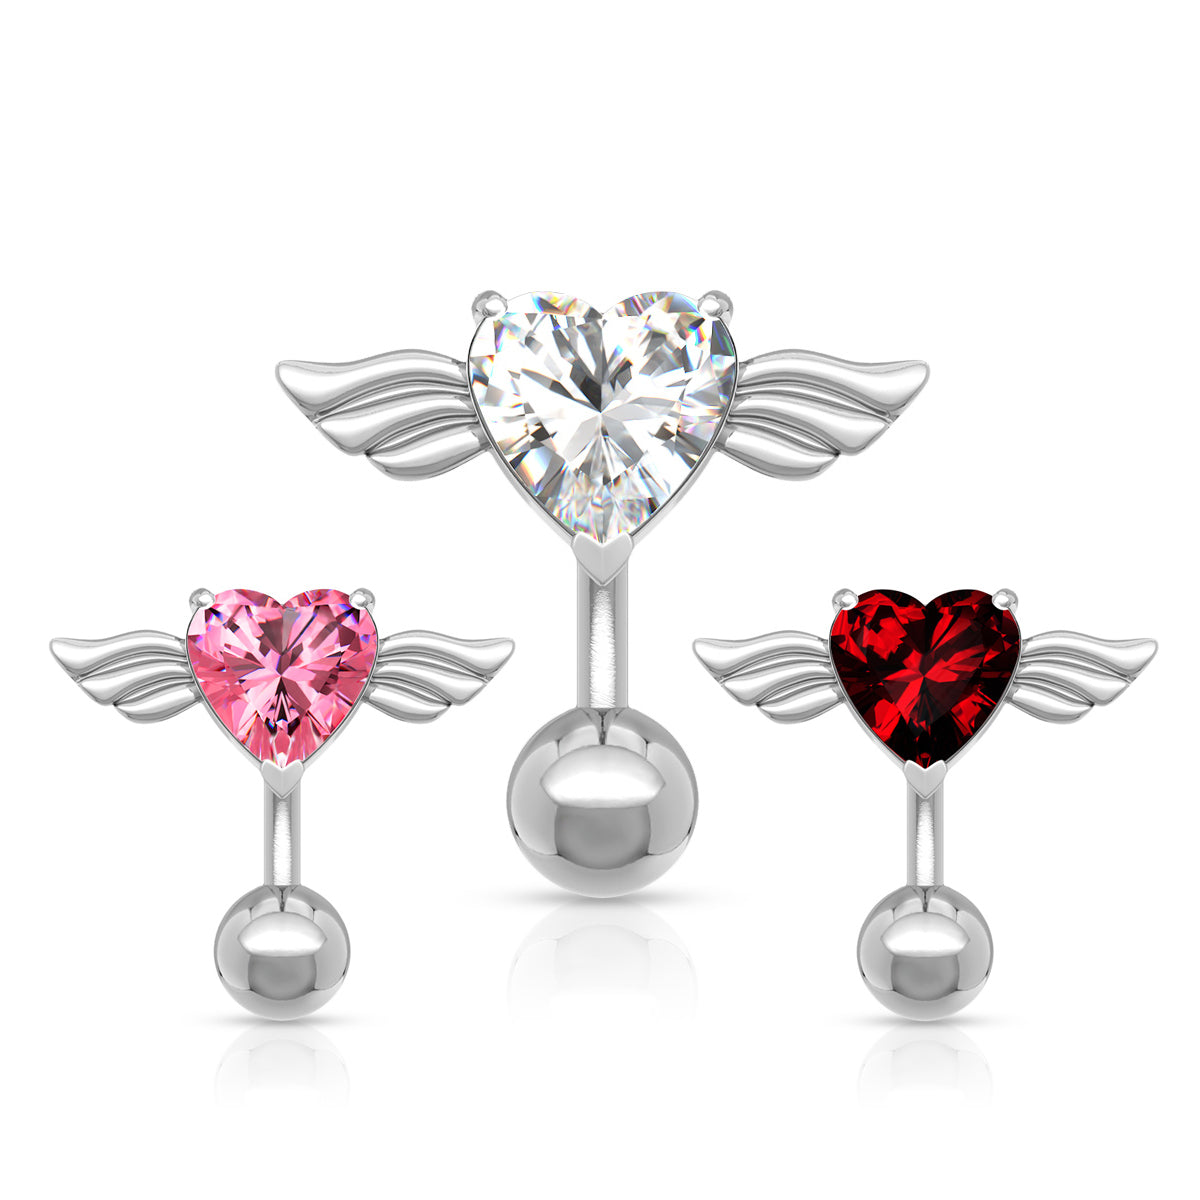 Top Down Angel Winged 8mm Heart CZ Navel Belly Ring